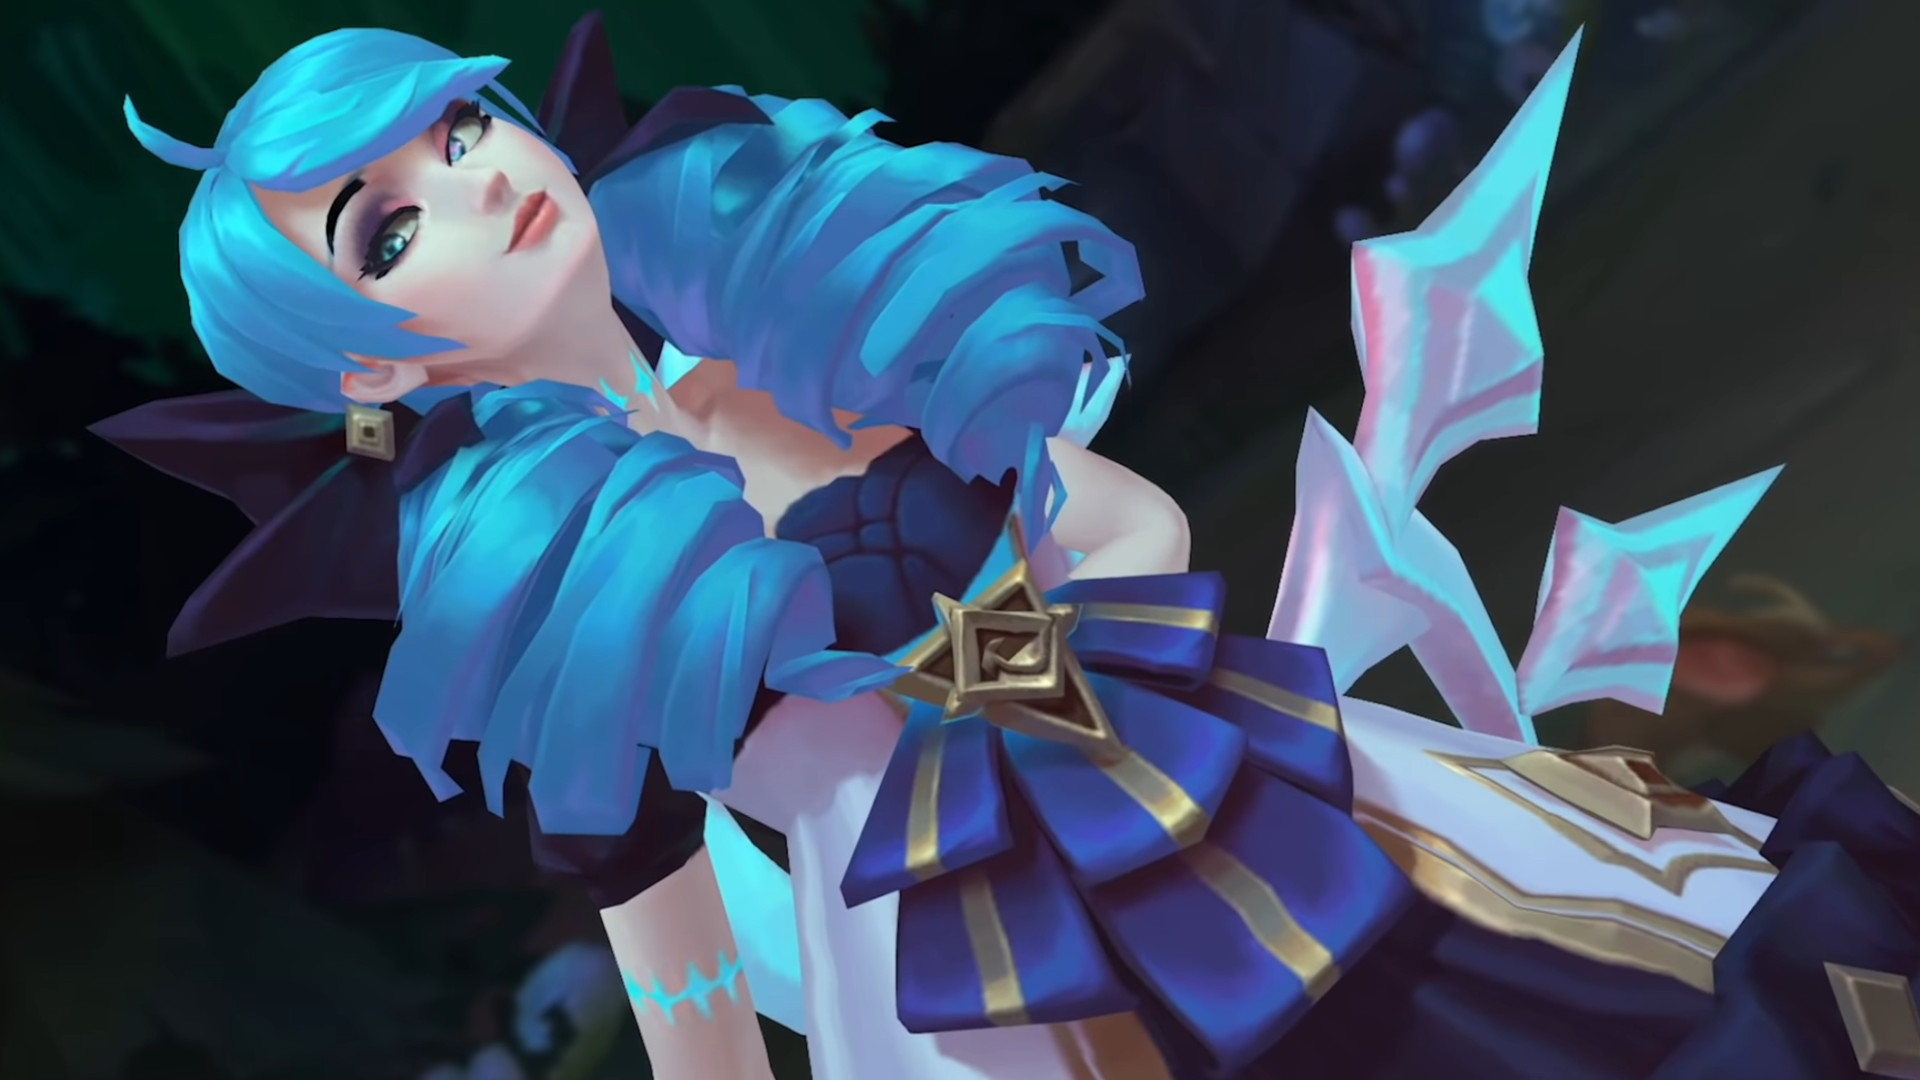 League of Legends' new champion is Gwen, and she's a creepy living doll